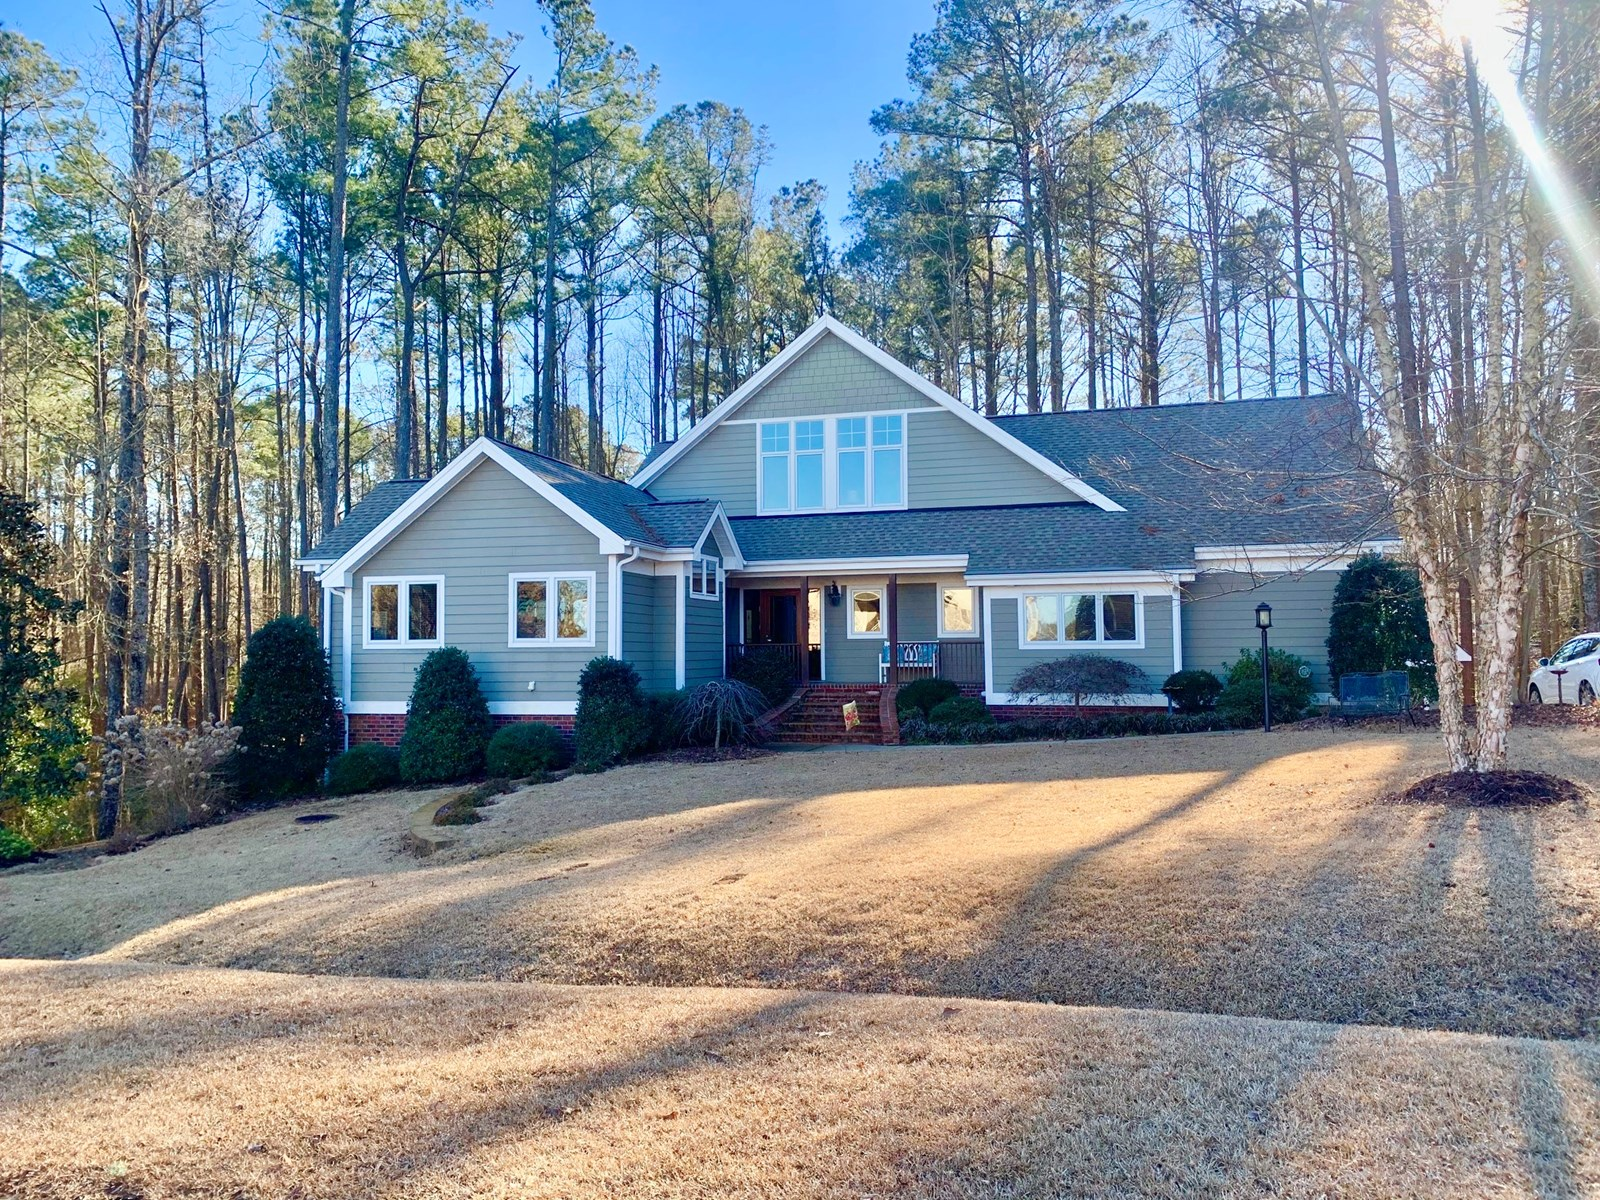 Golf course/boating community home in Cypress Landing NC